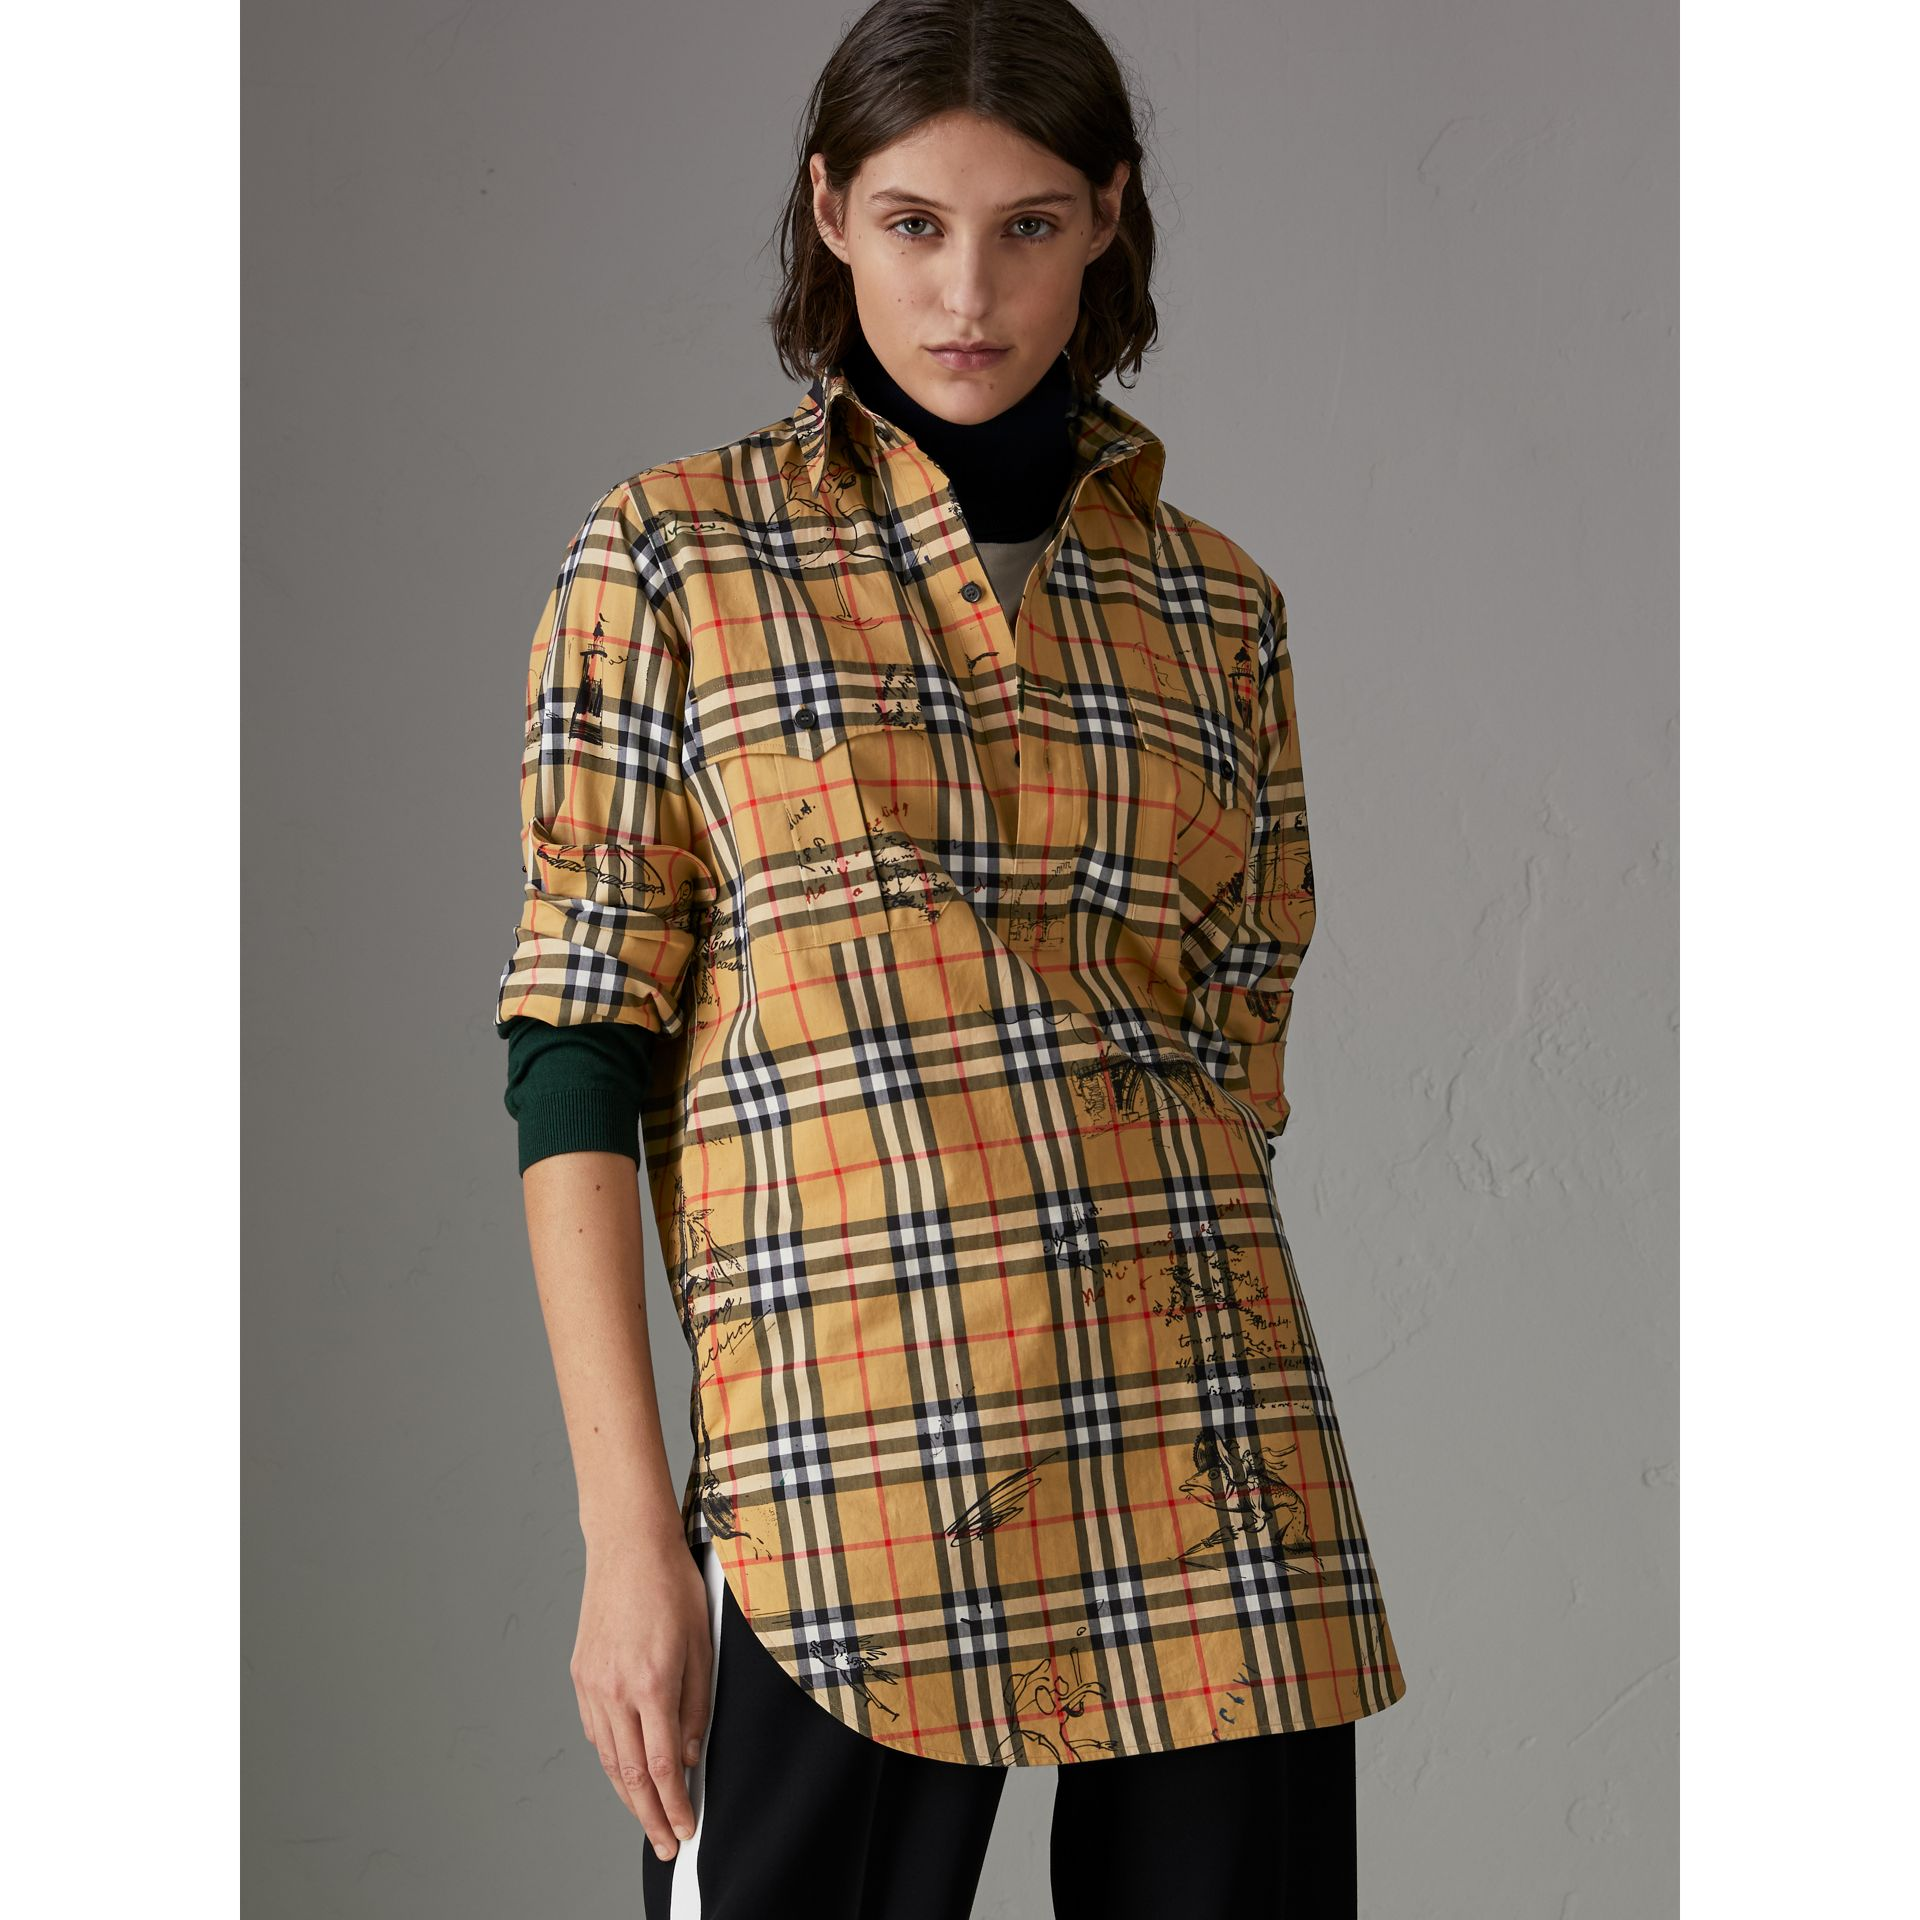 Postcard Print Vintage Check Tunic Shirt in Antique Yellow - Women | Burberry - gallery image 4